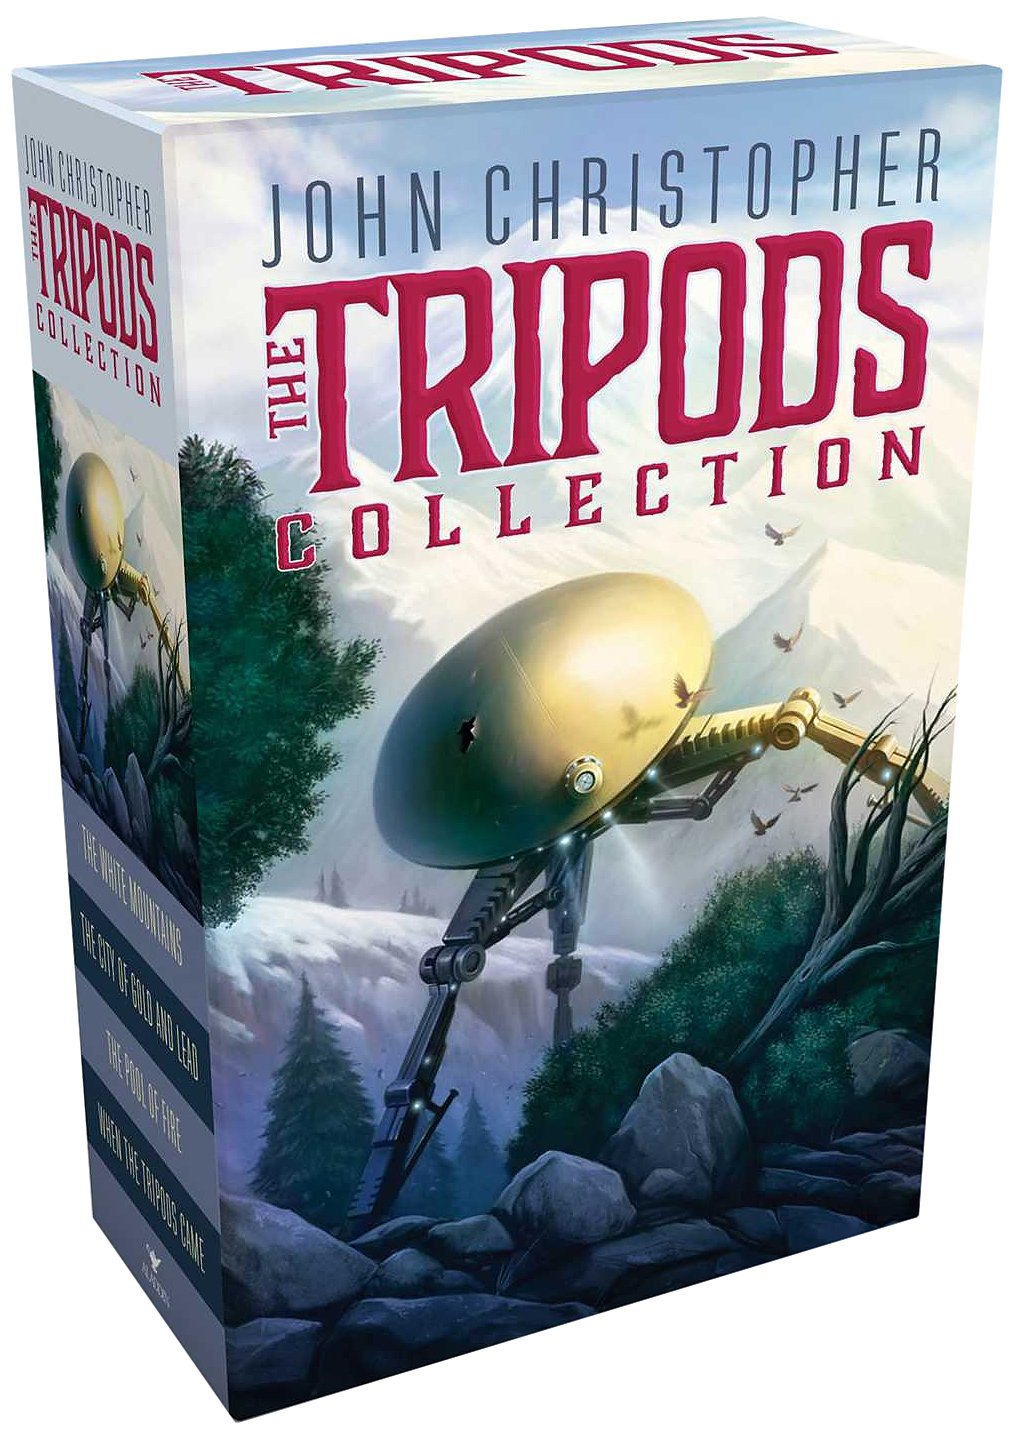 Uncategorized Tripod Books amazon com the tripods collection white mountains city of gold and lead pool fire when came 978148141505